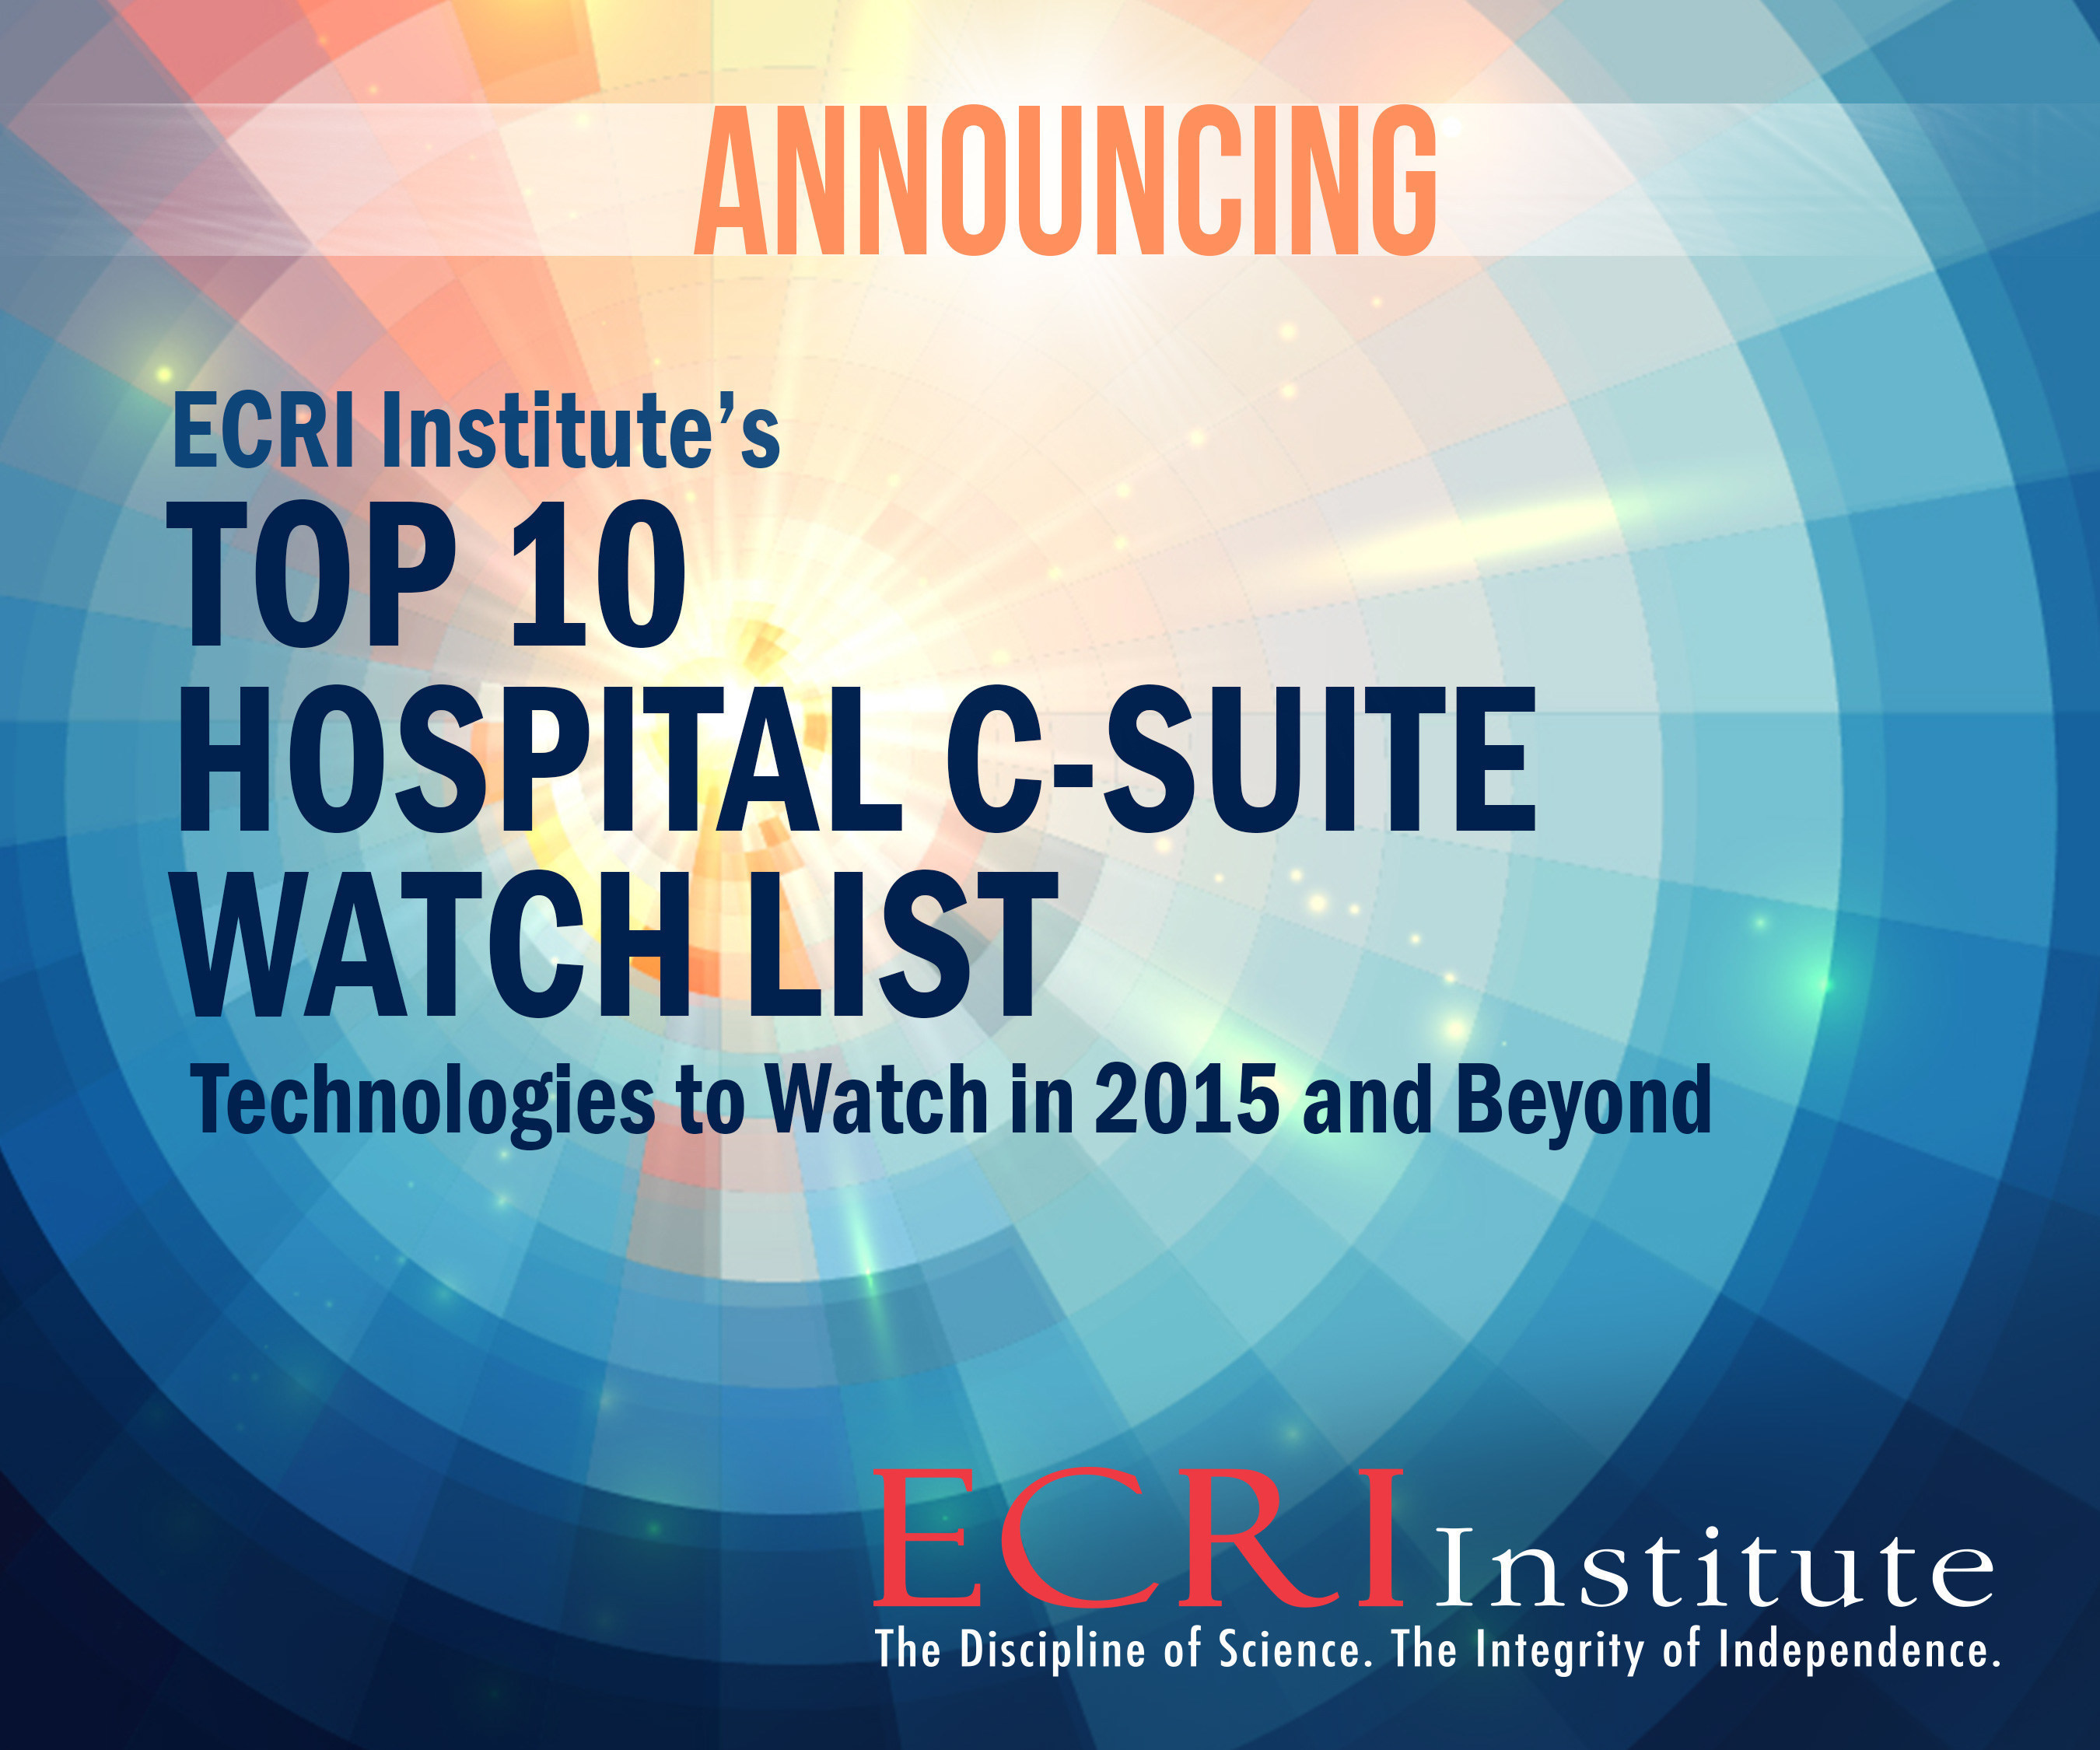 ECRI Institute's 2015 Top 10 Hospital C-Suite Watch List, available as a free public service, answers key ...